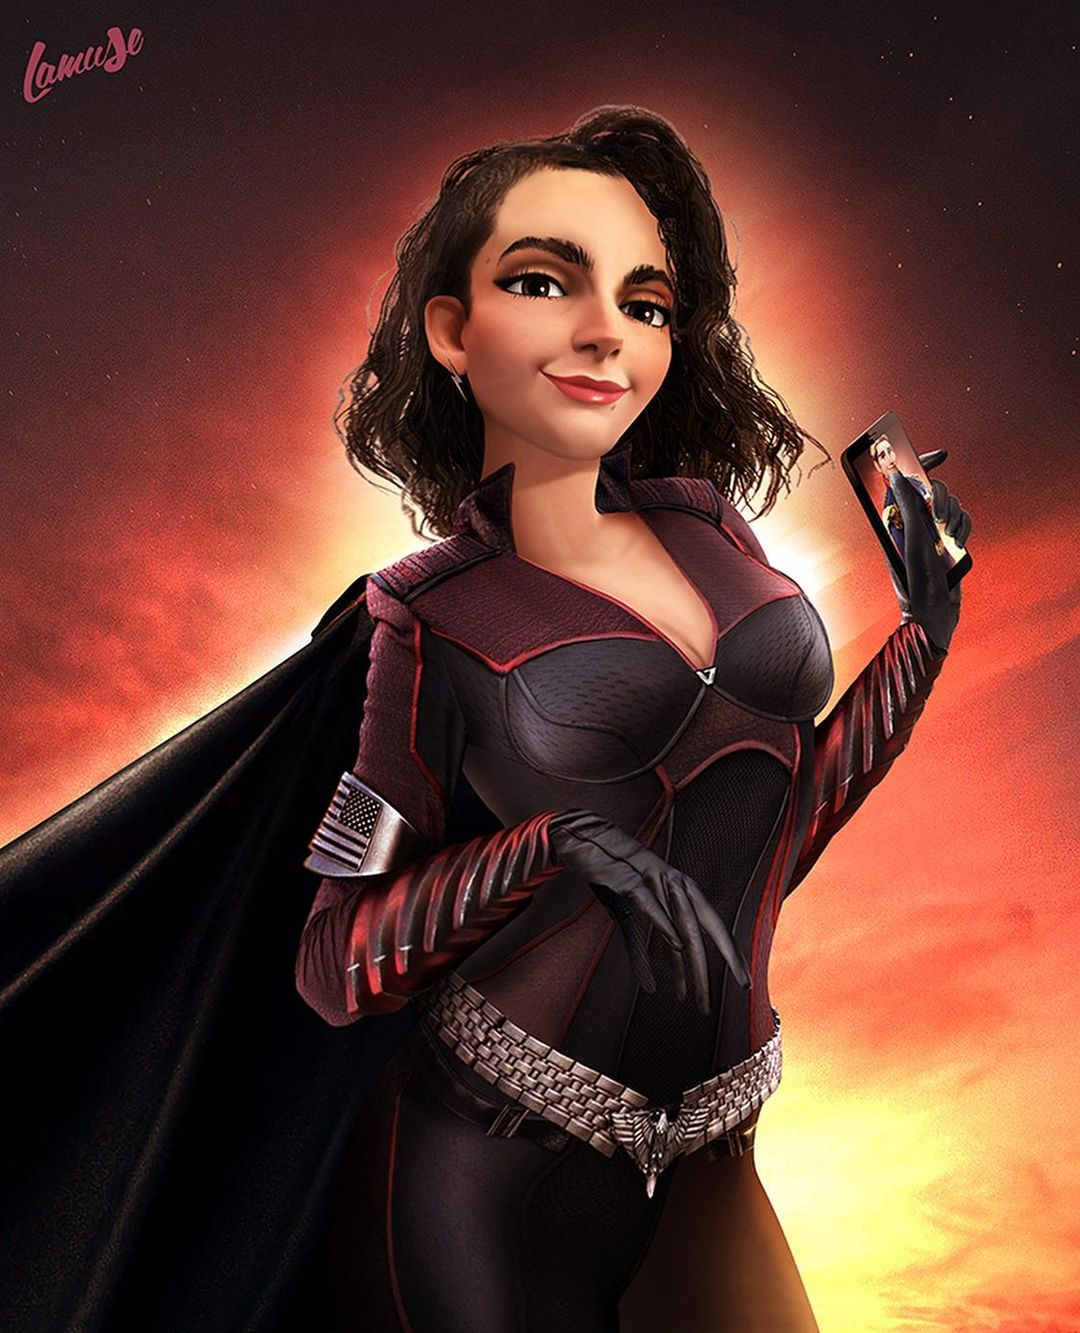 Disney characters reimagined as Marvel and DC icons 30